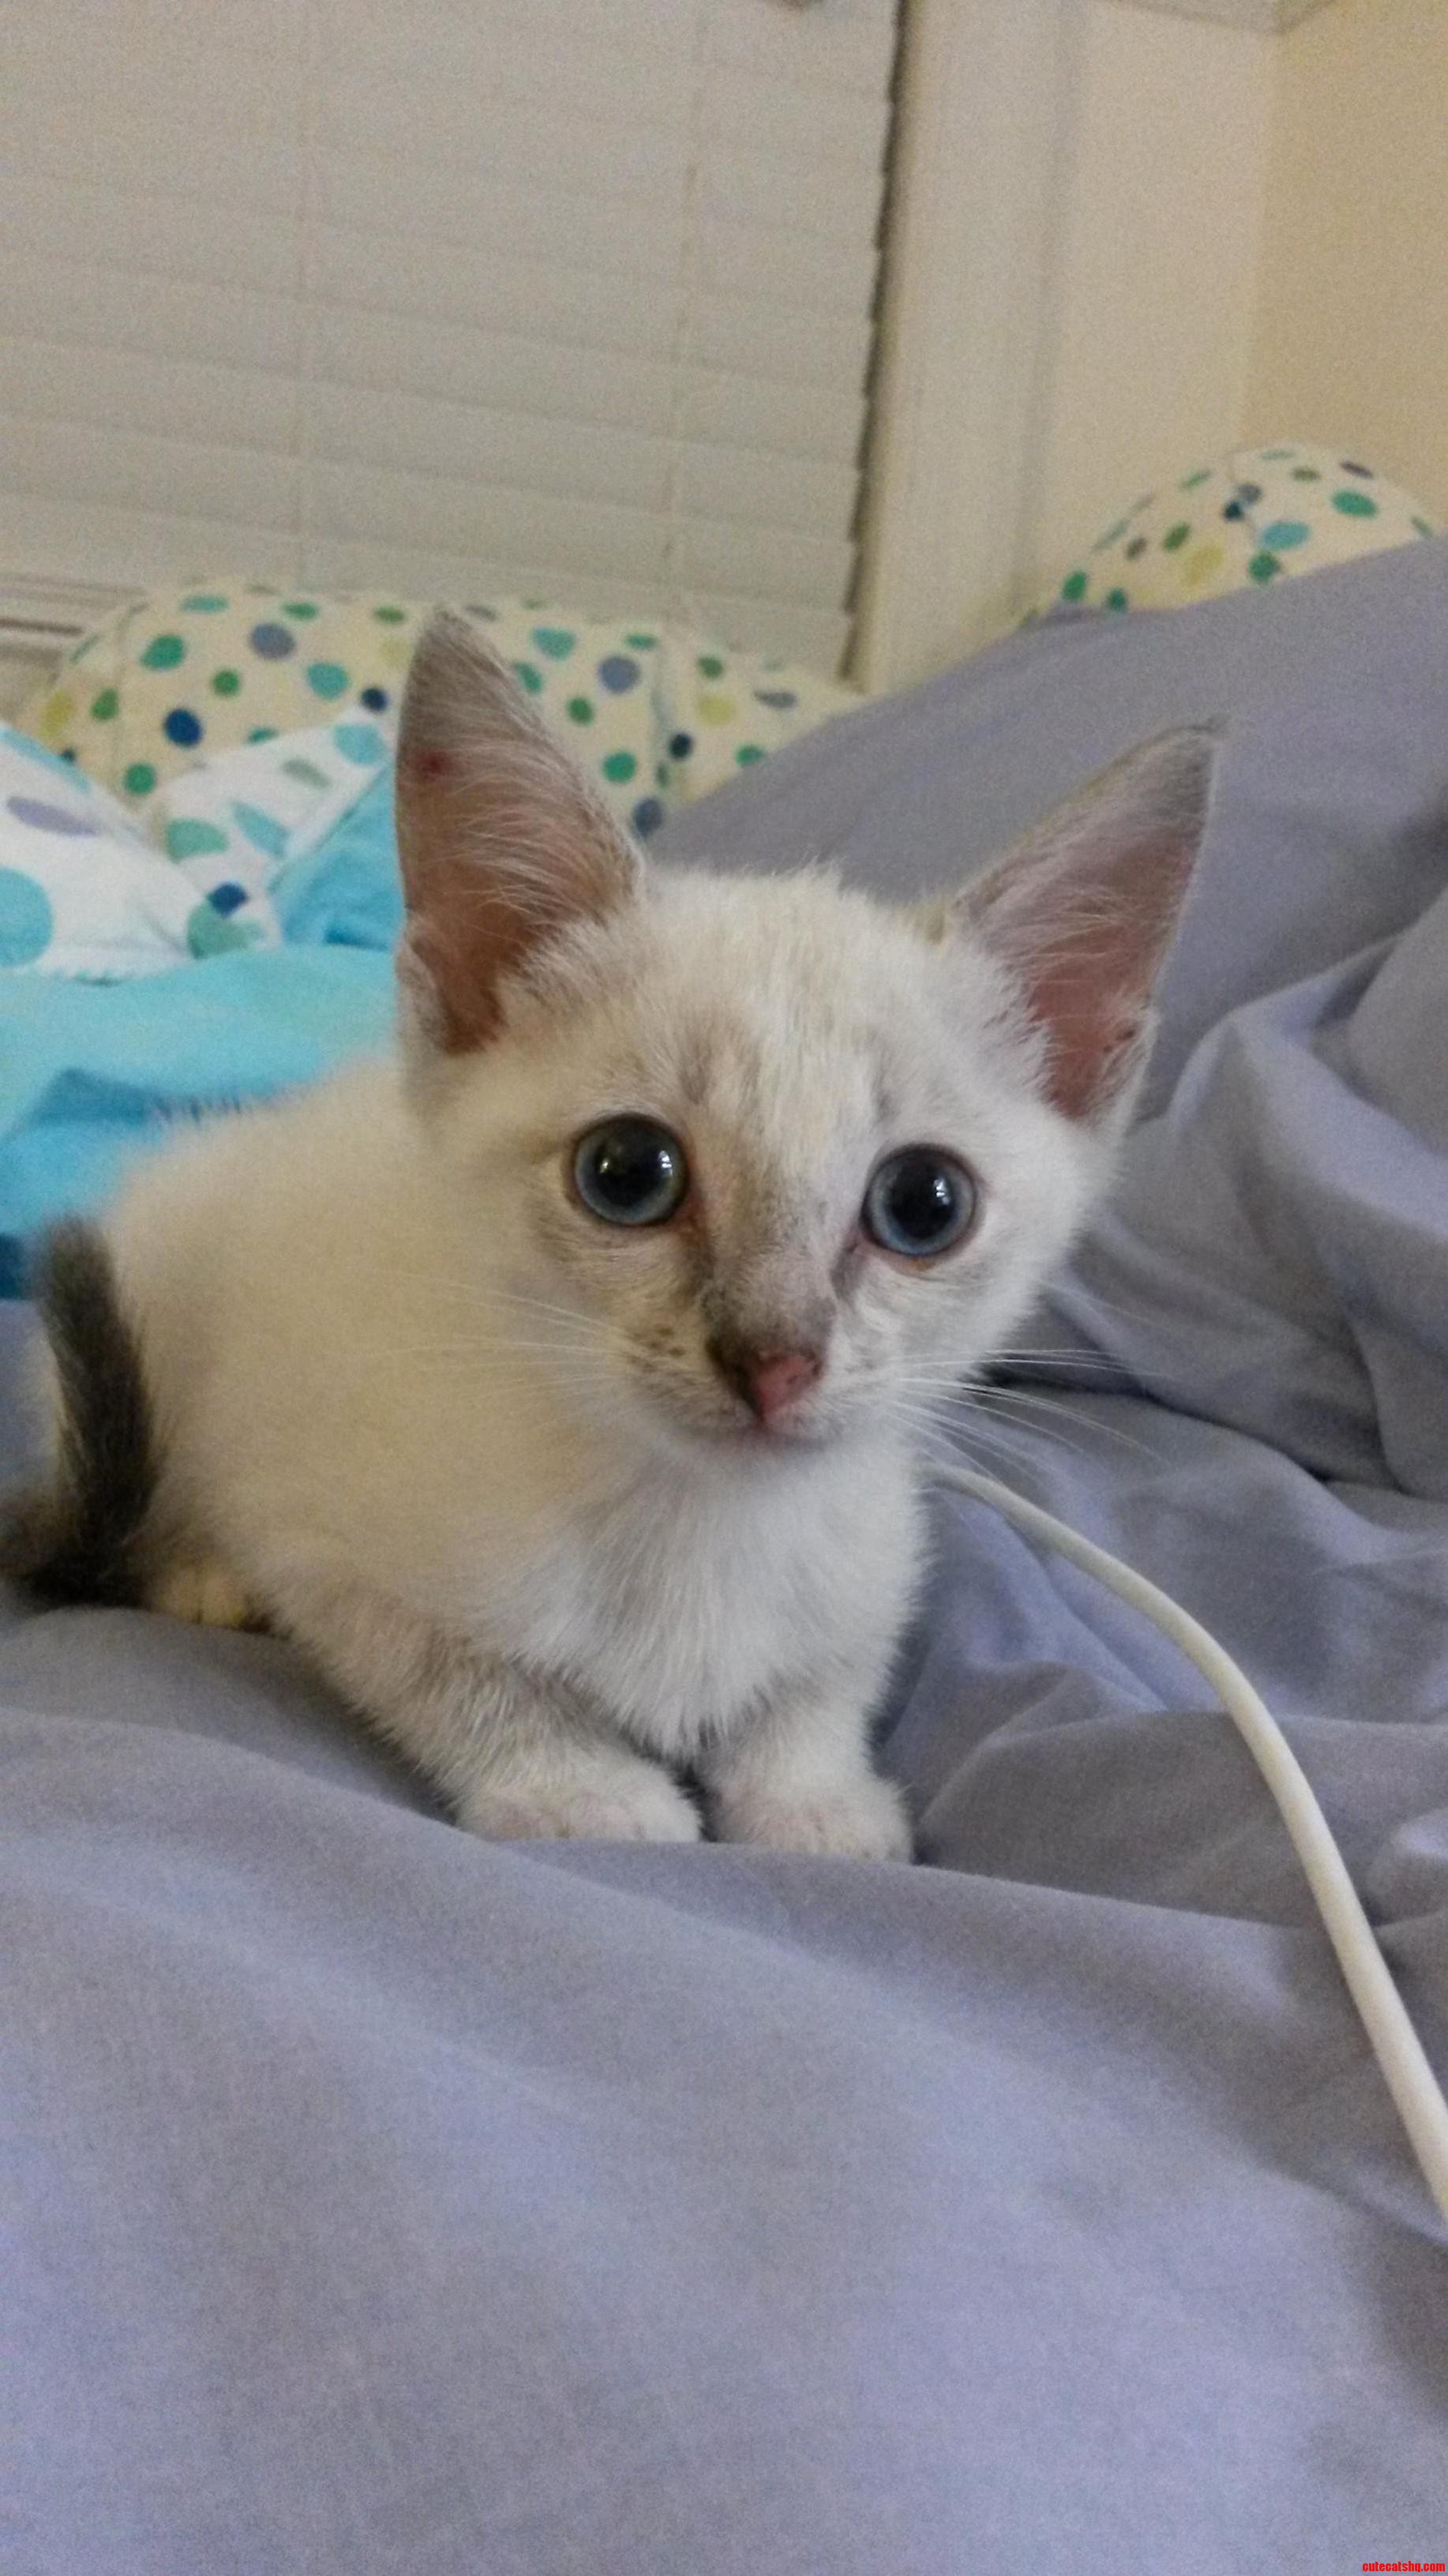 What Breed Kitten Is This Does Her White Fur And Blue Eyes Mean She Ll Be Deaf